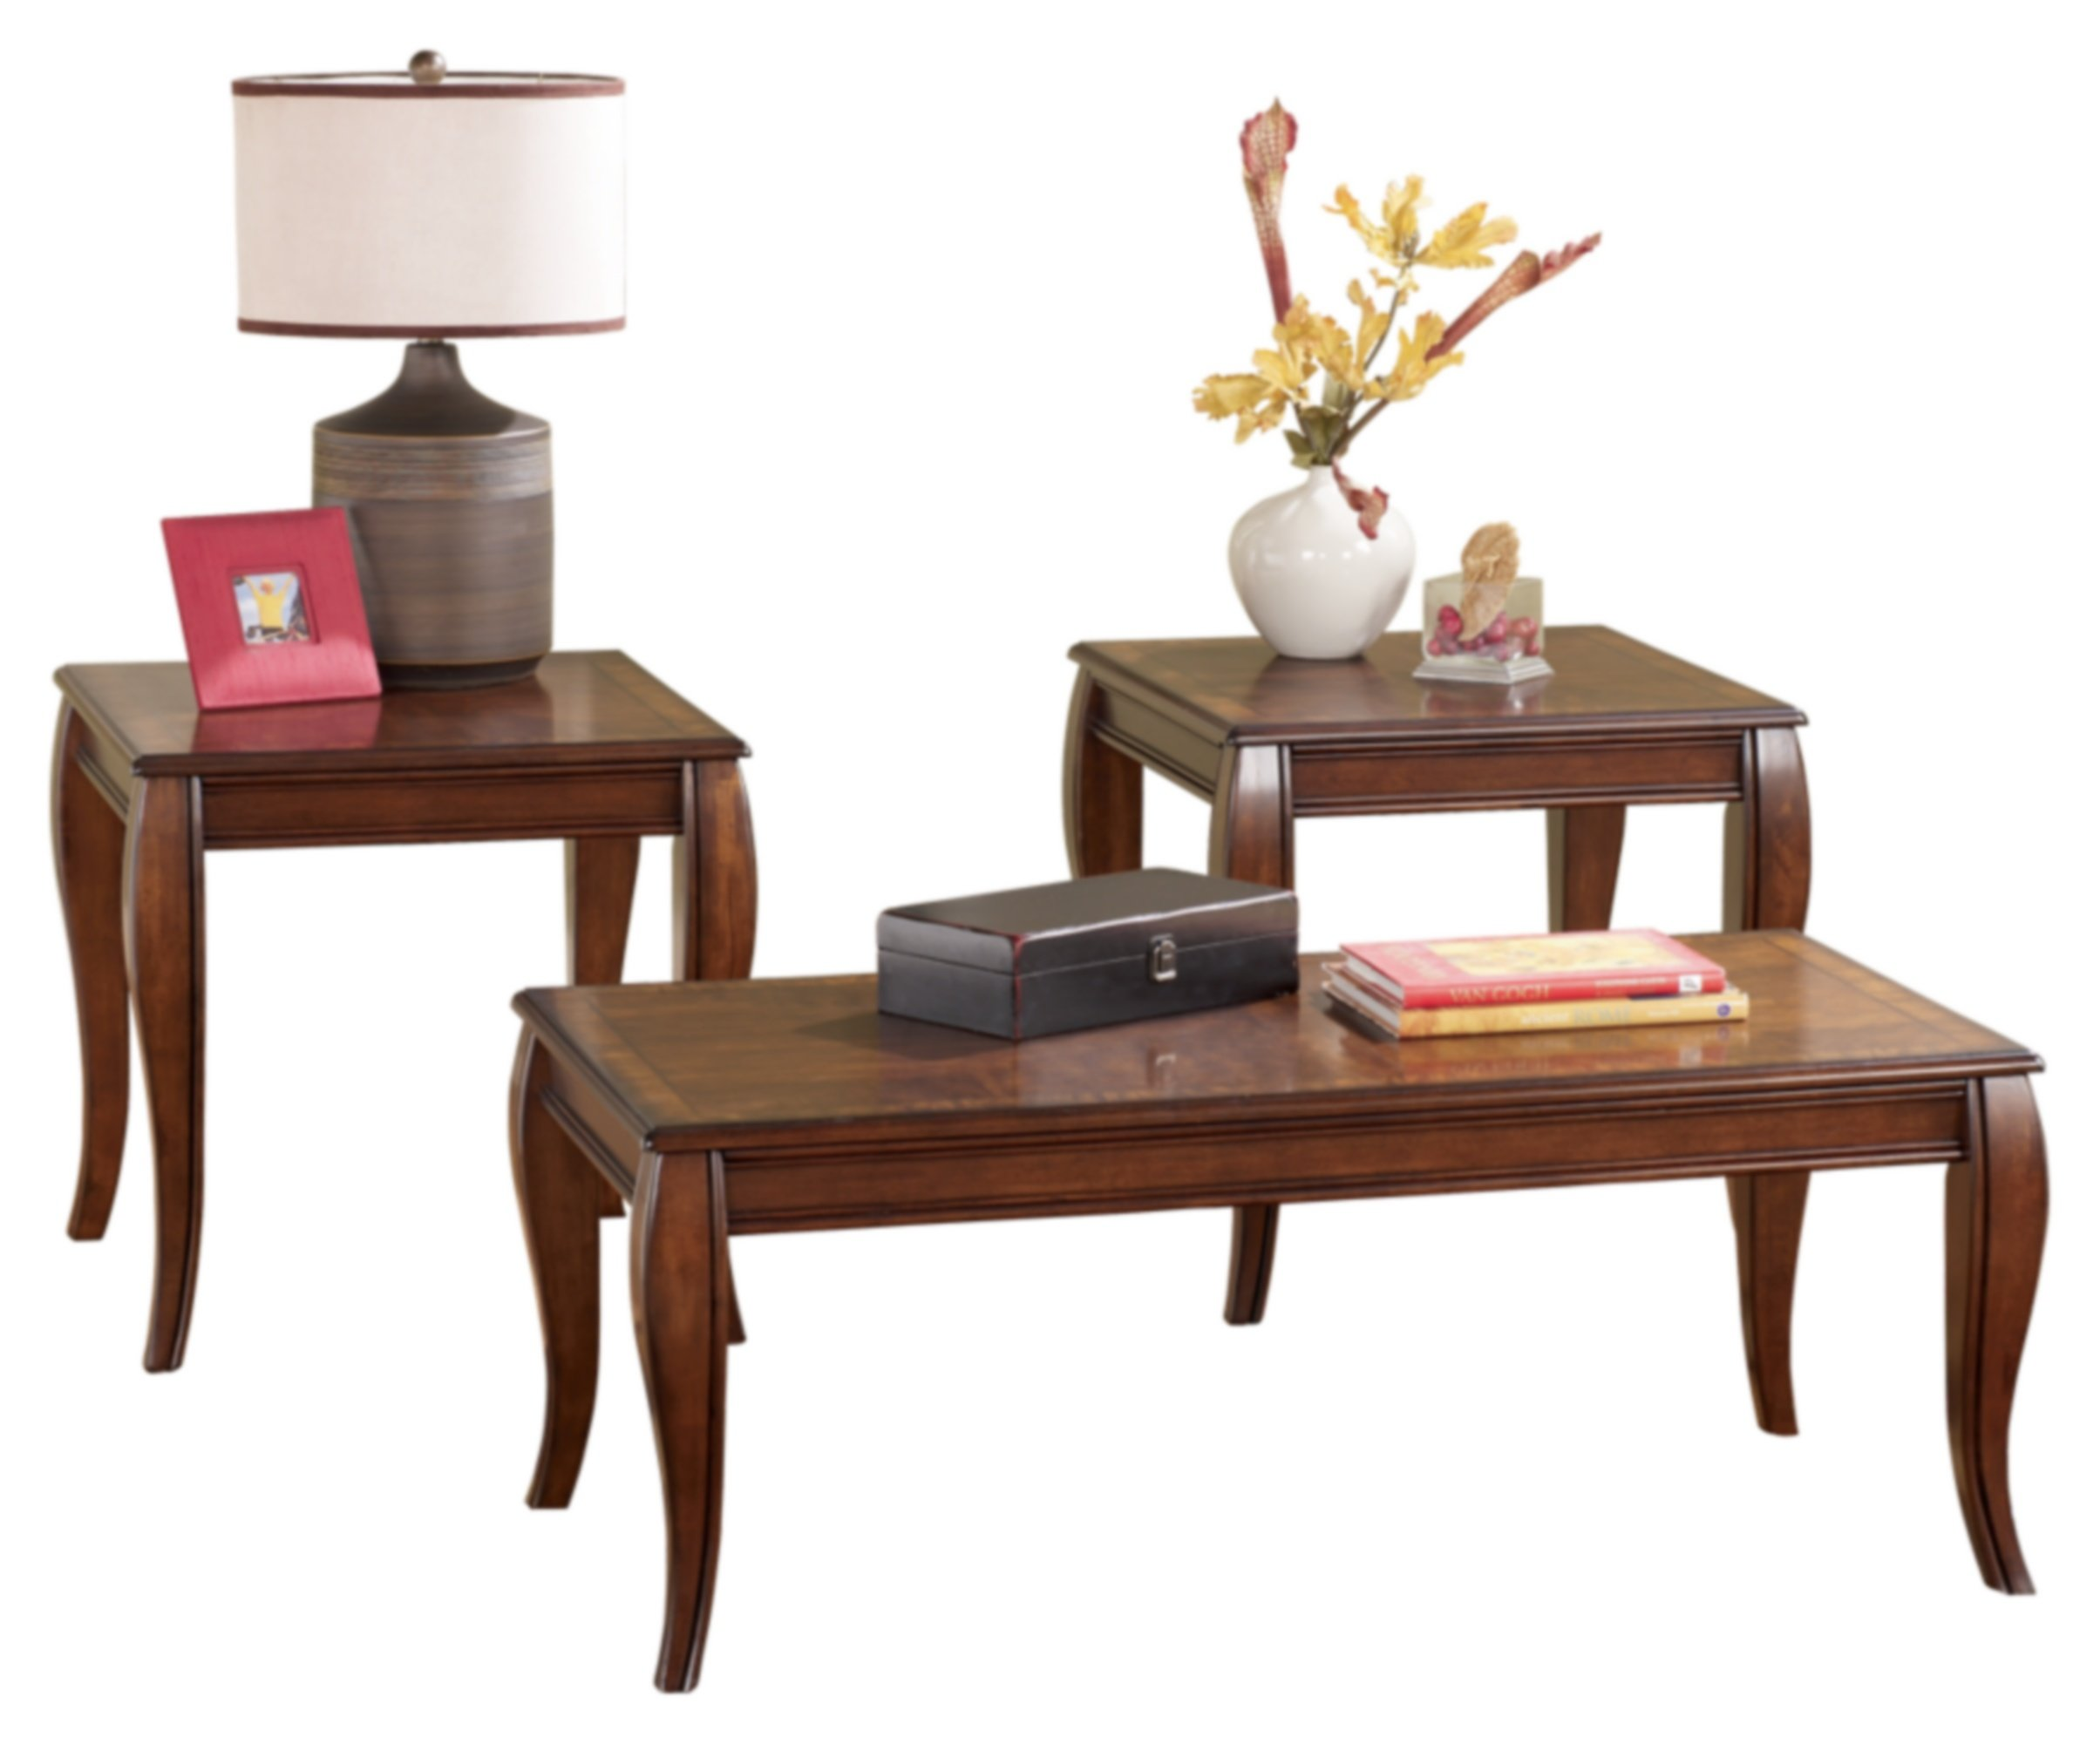 signature design ashley corrie piece coffee table set reviews harrietta accent plum tablecloth vintage tier ott chair wide threshold wood outdoor cooler stand small wooden